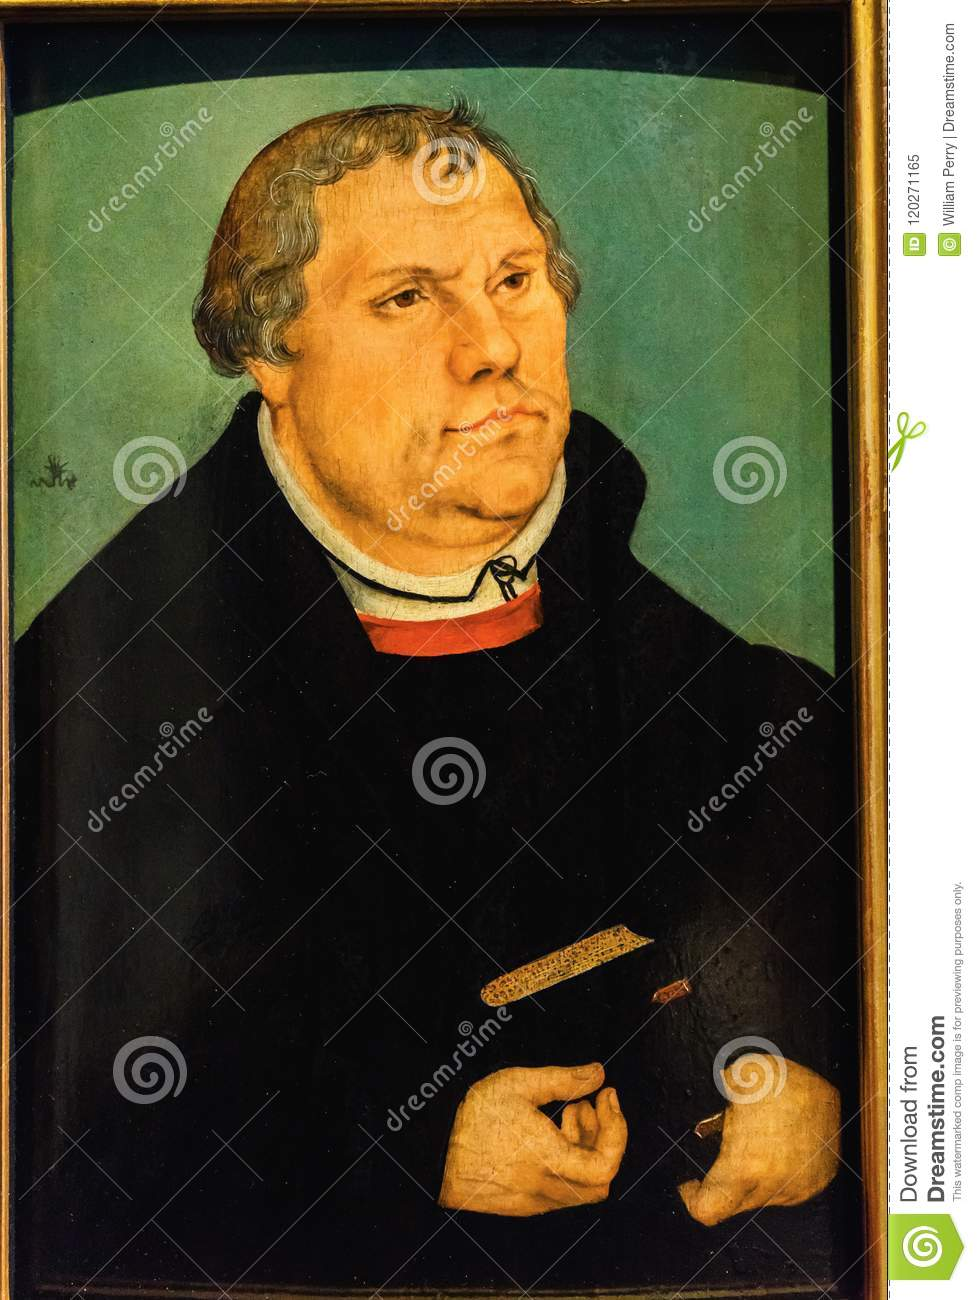 Alter Luther Portrait Painting Luther u. x27; s-Haus Lutherstadt Wittenbe